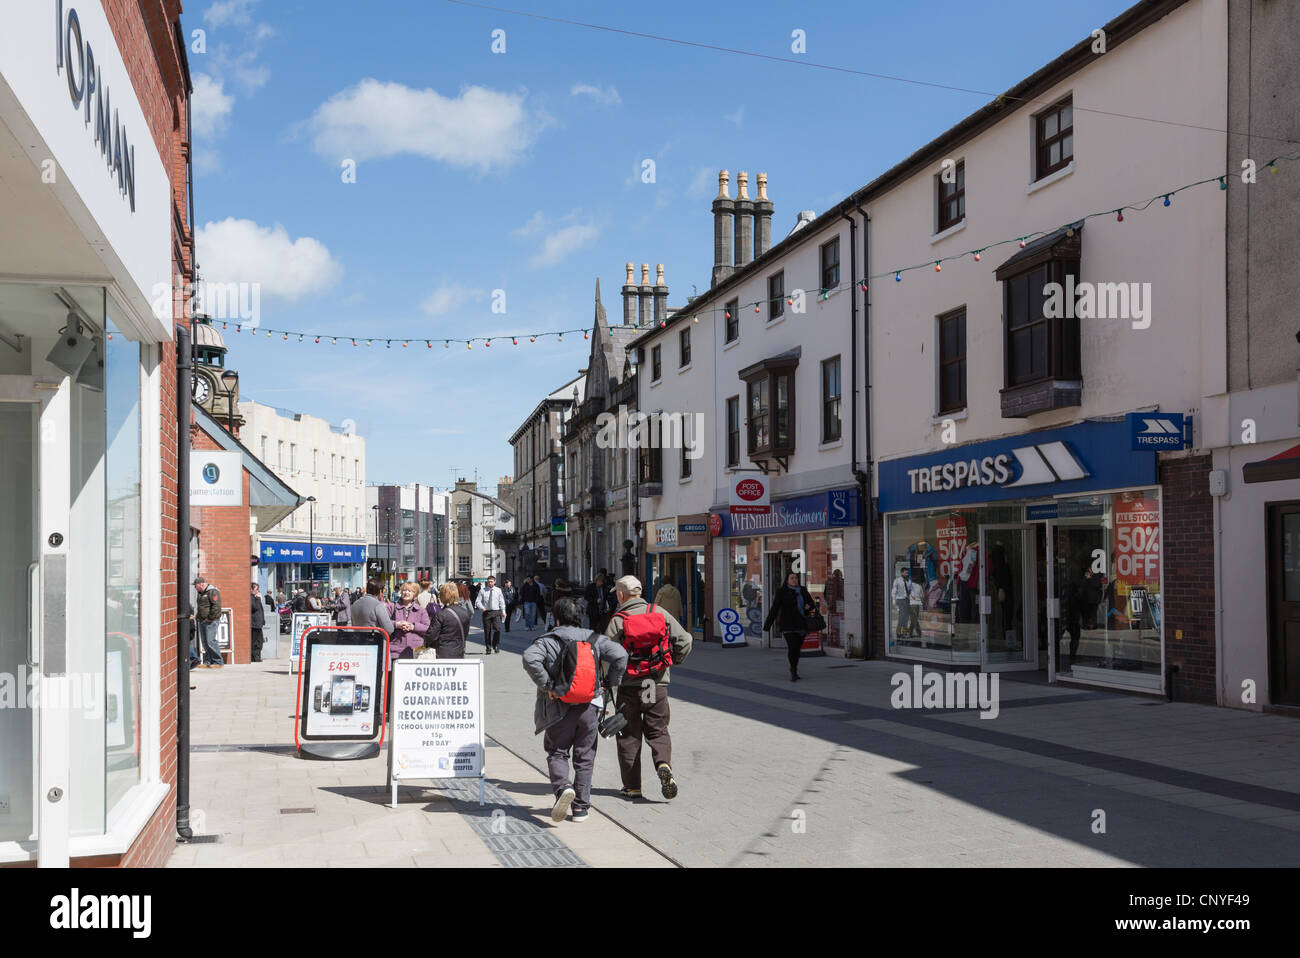 Street scene with people and shops in the city centre shopping precinct. High Street, Bangor, North Wales, UK, Britain. - Stock Image